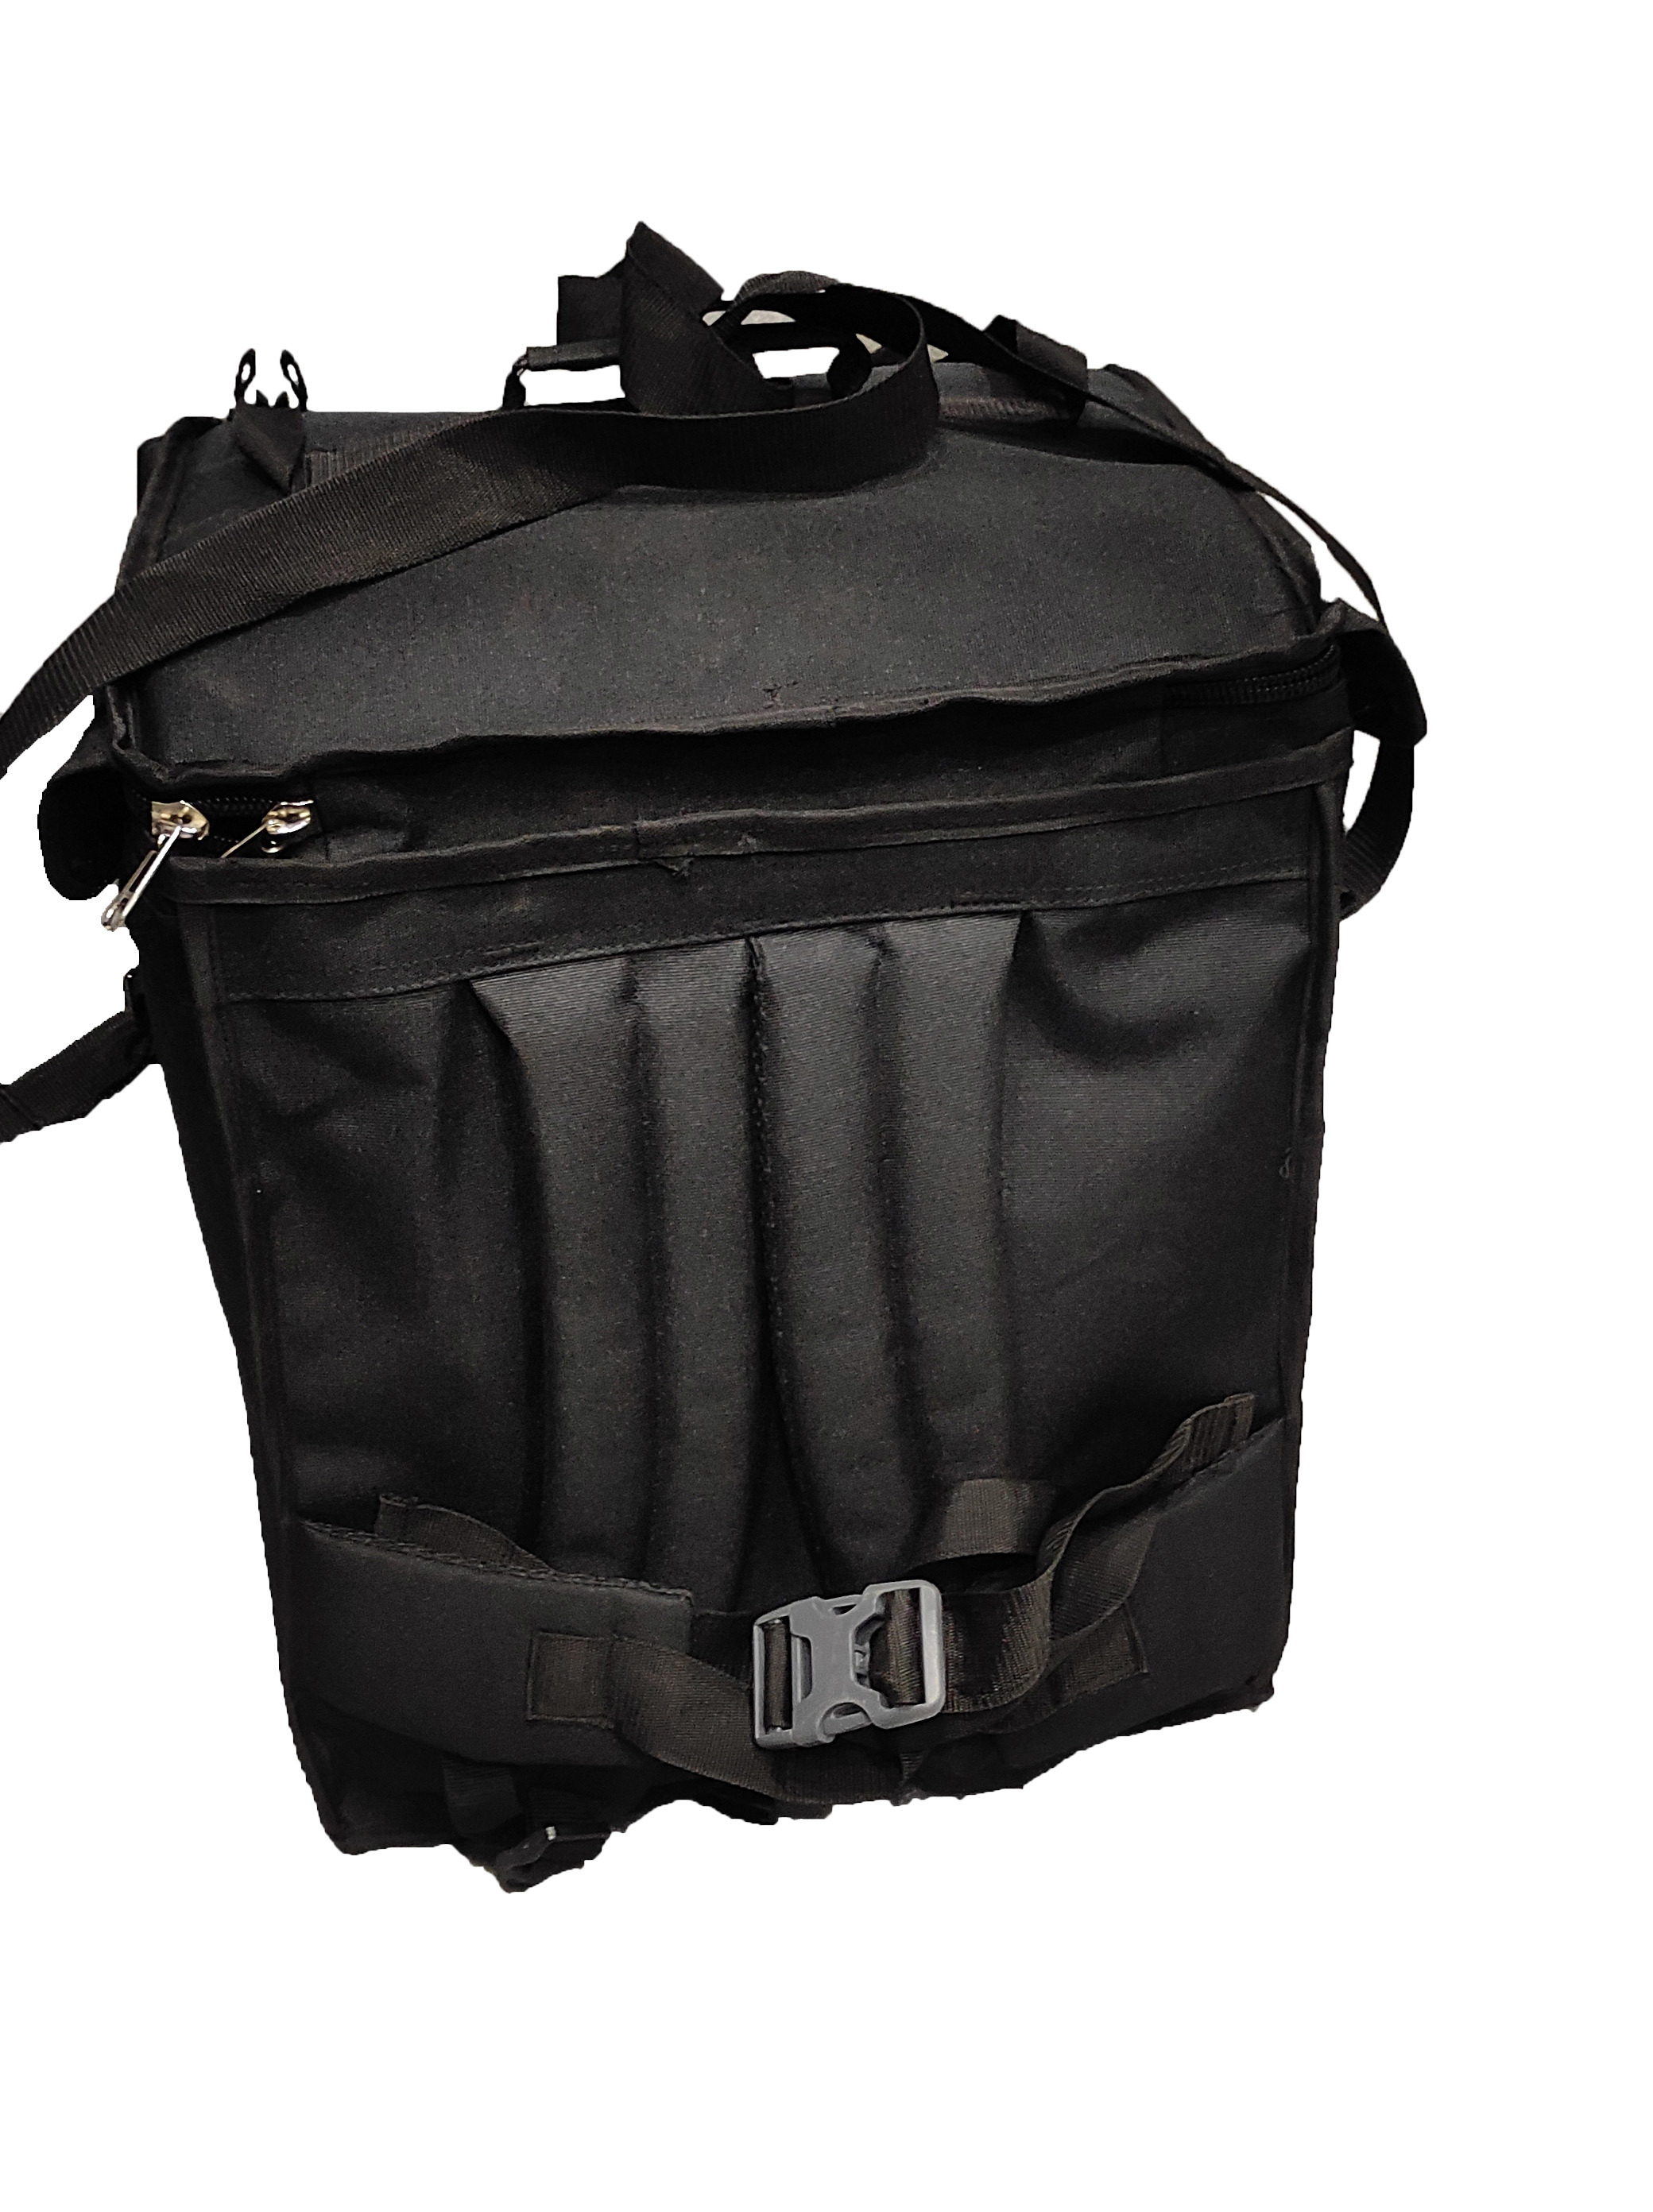 Manufacturer of Food Delivery Bags